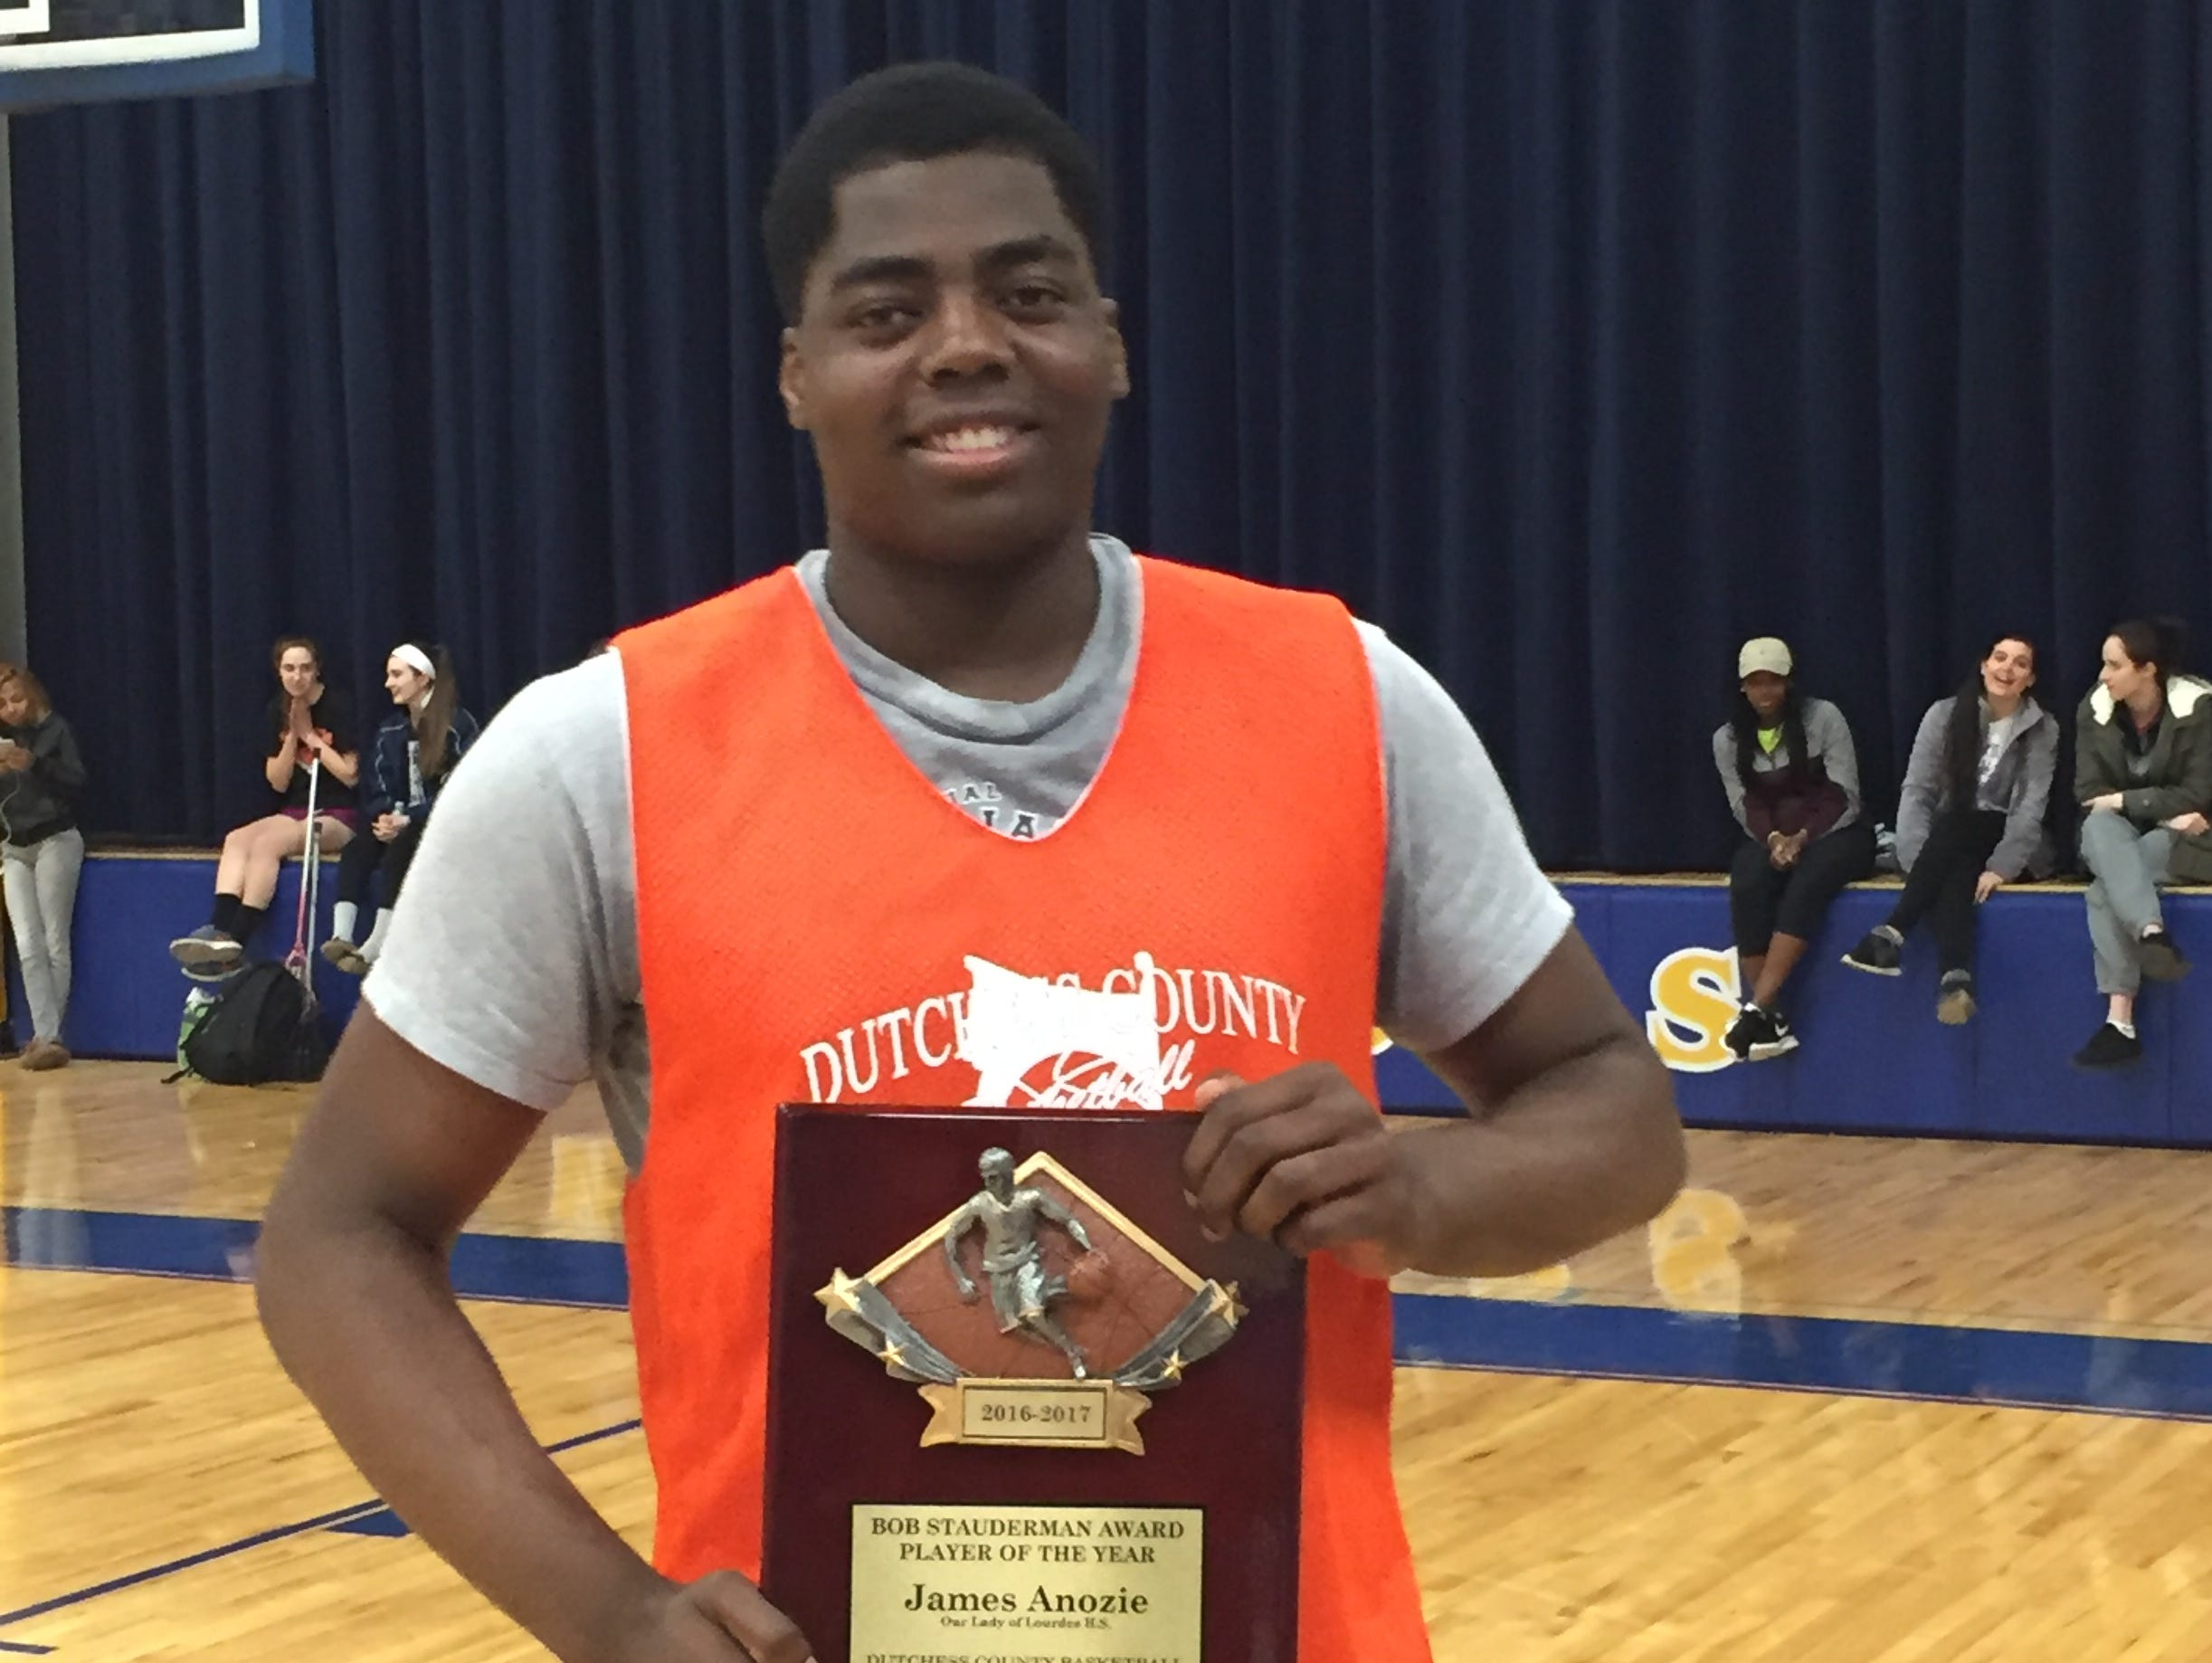 Our Lady of Lourdes' James Anozie was named Dutchess County Basketball Coaches Association Player of the Year at Monday's Exceptional Senior game at Lourdes.